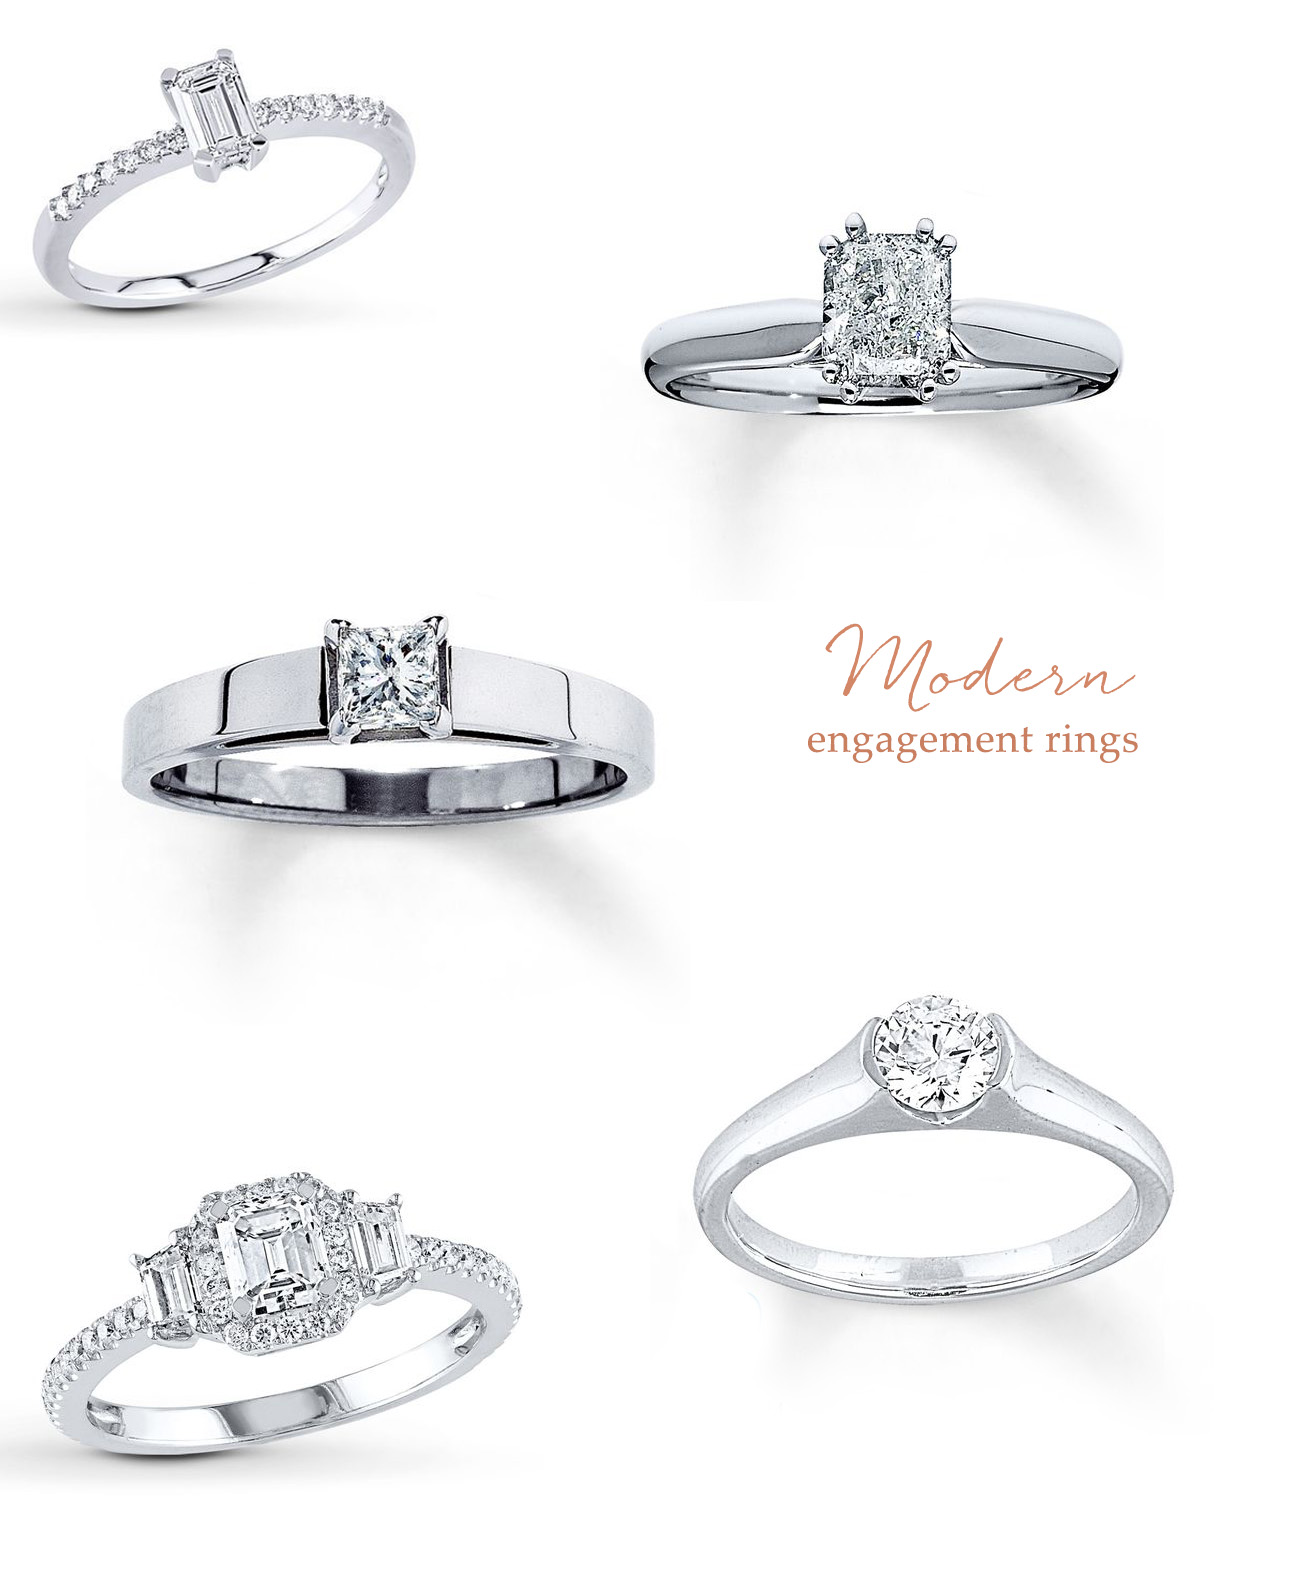 Modern engagement rings from Jared